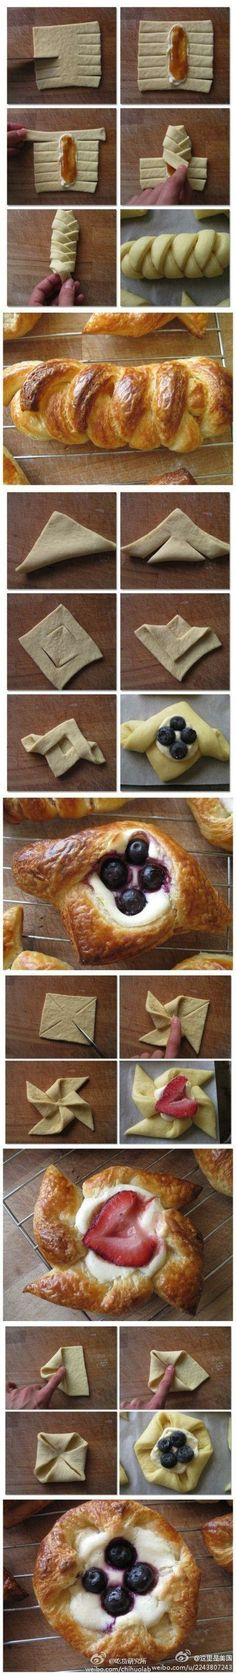 :) Pastry folding 101 #funny #silly #humor - Check out loads of funny viral images.